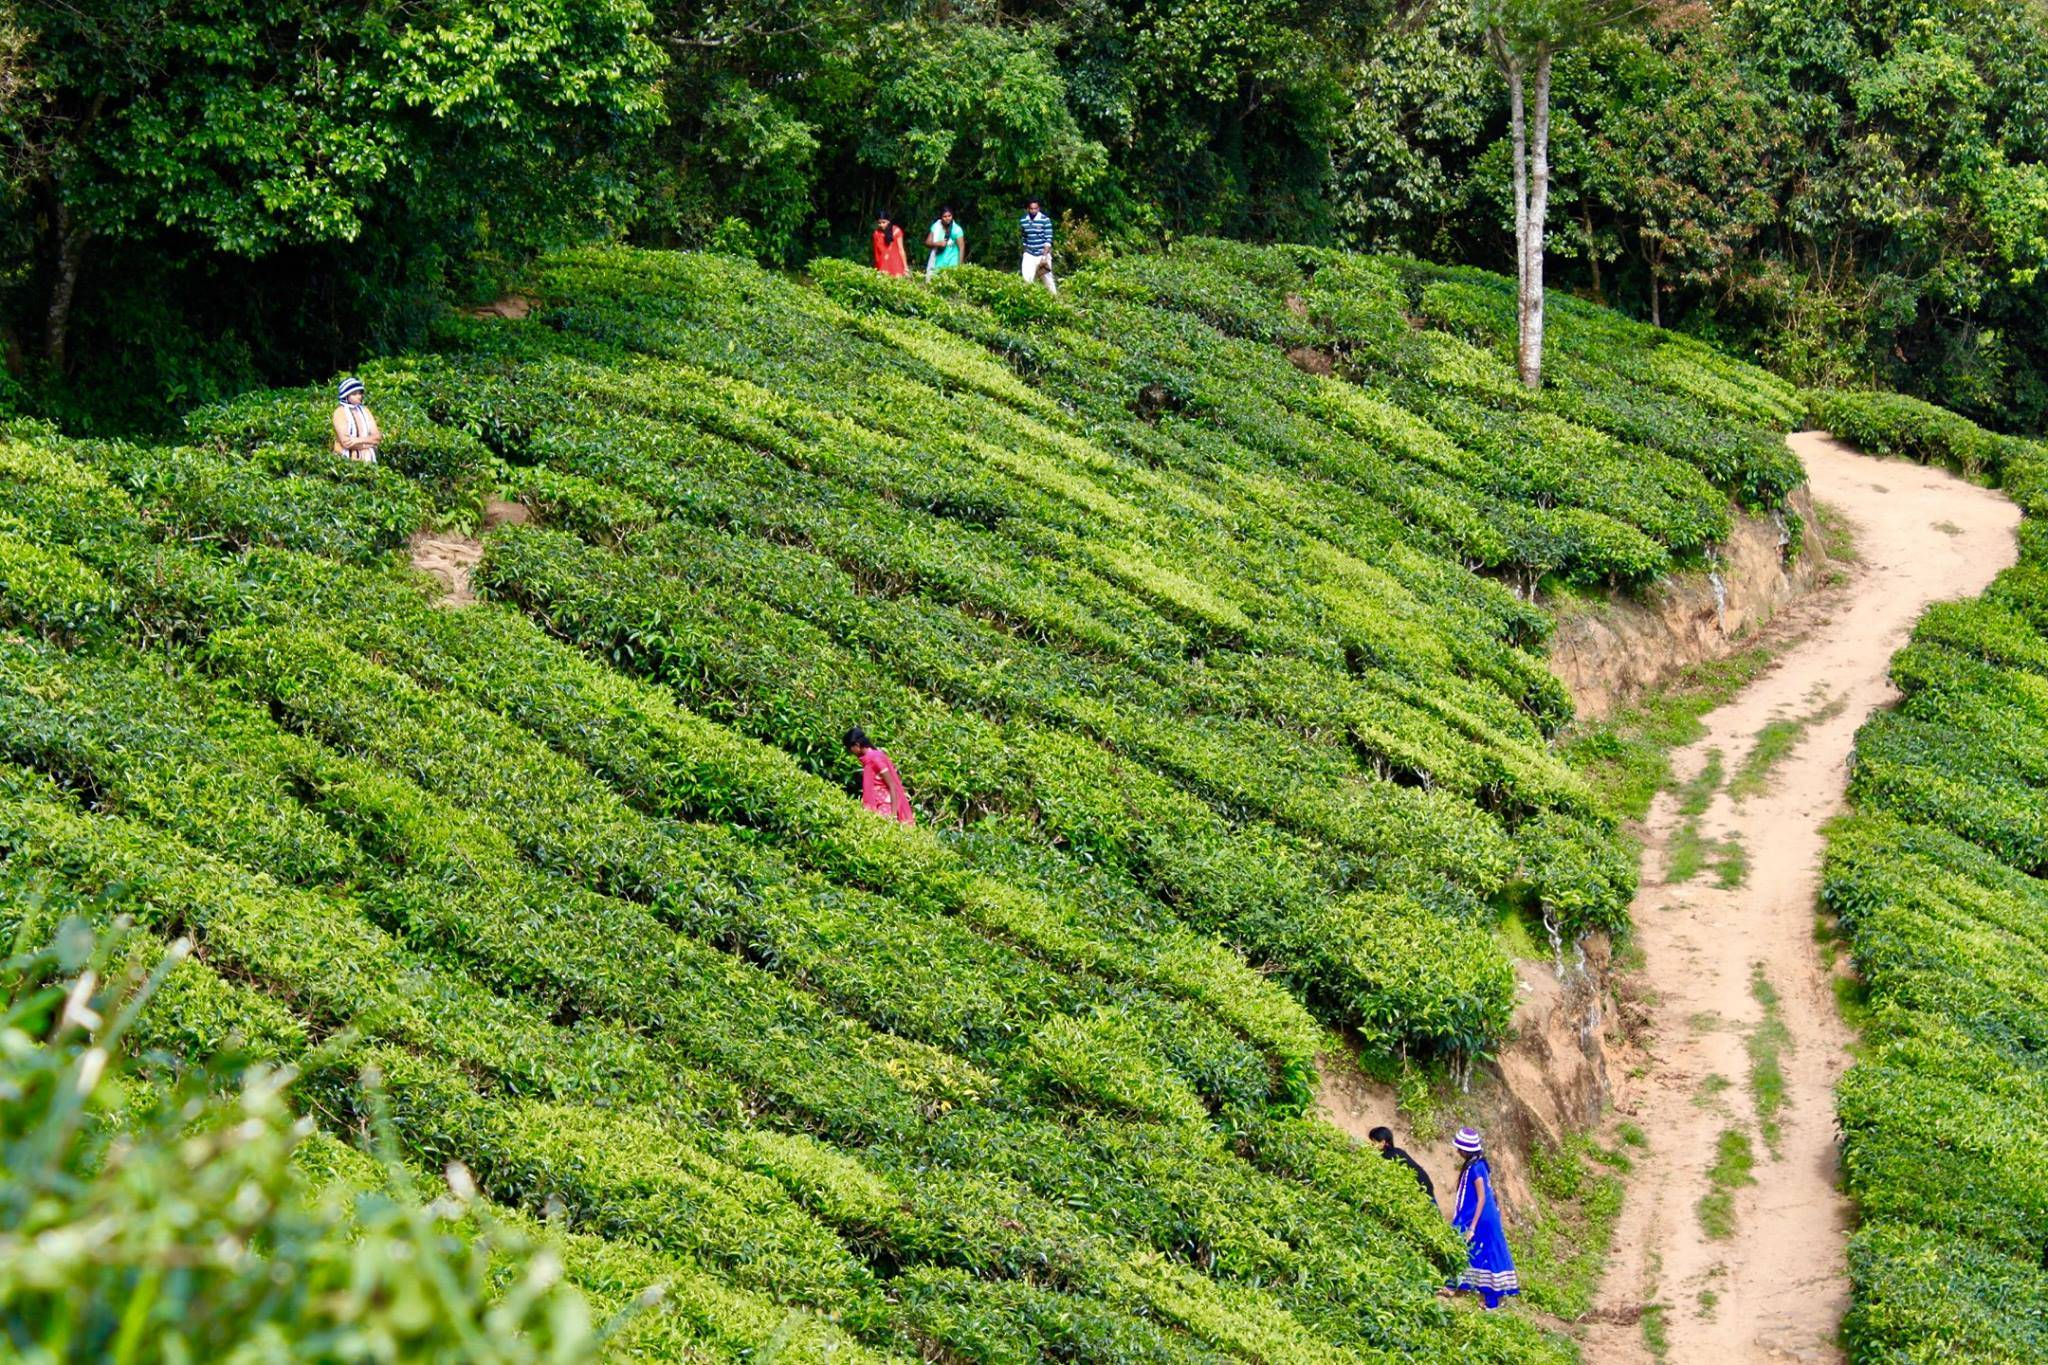 Photo 2: Plantations de thé à Munnar